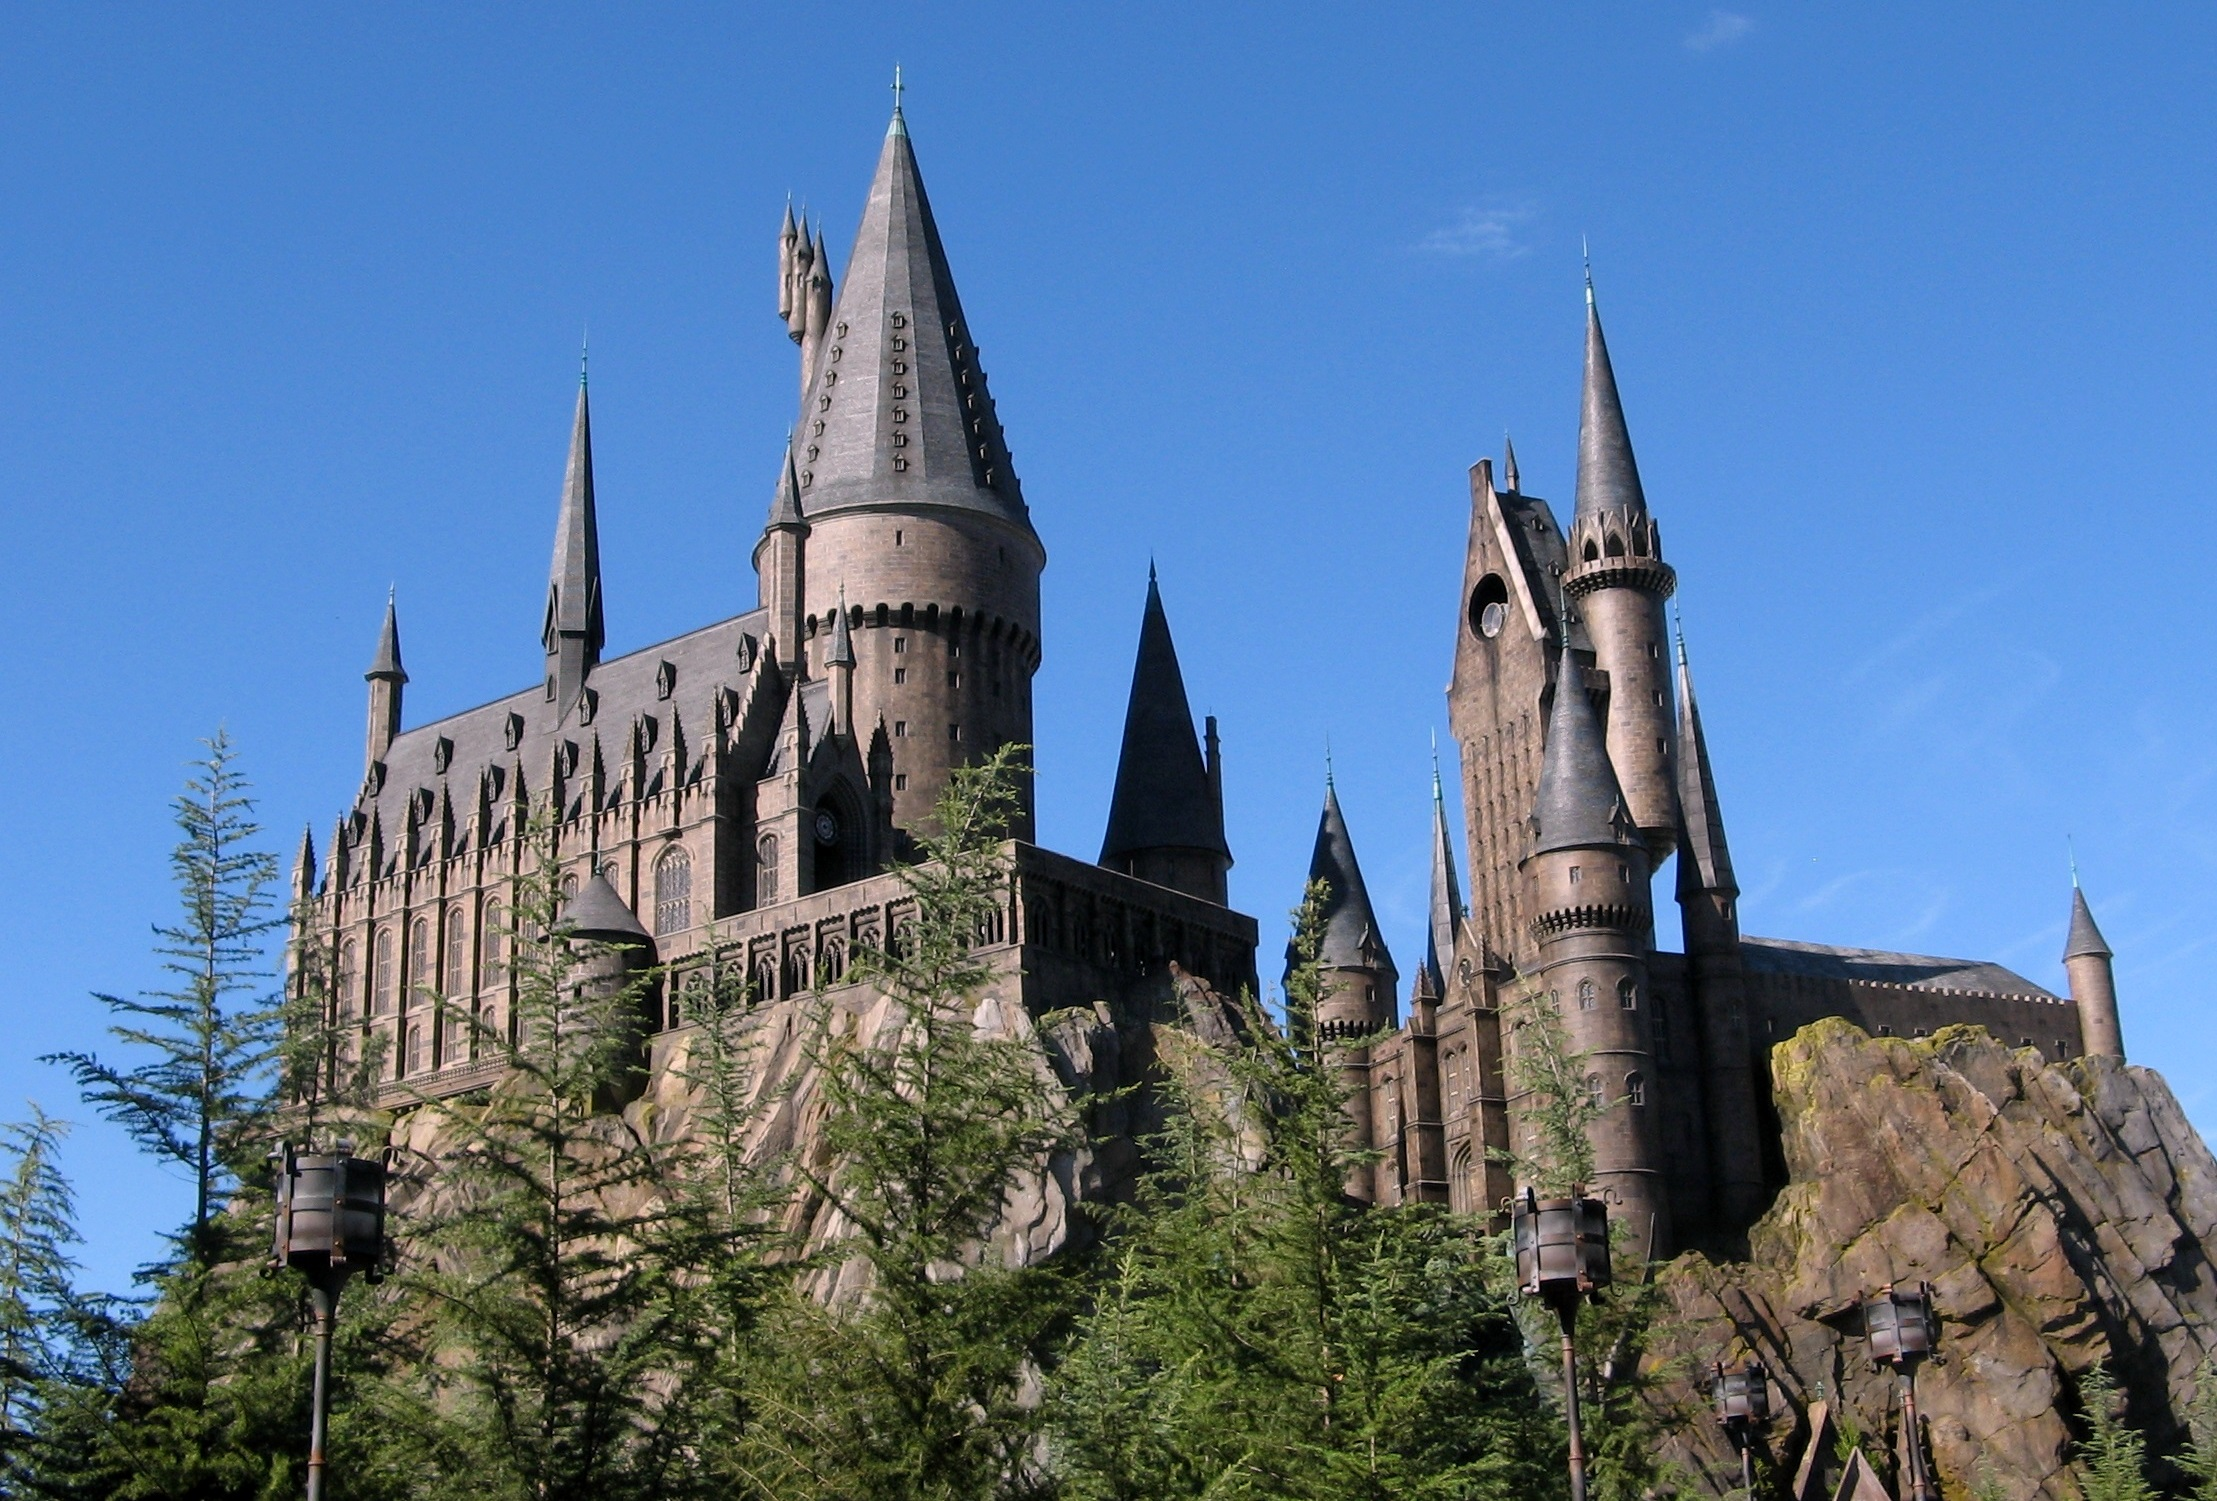 Pack your bags, the Wizarding World of Harry Potter is coming to Hollywood!